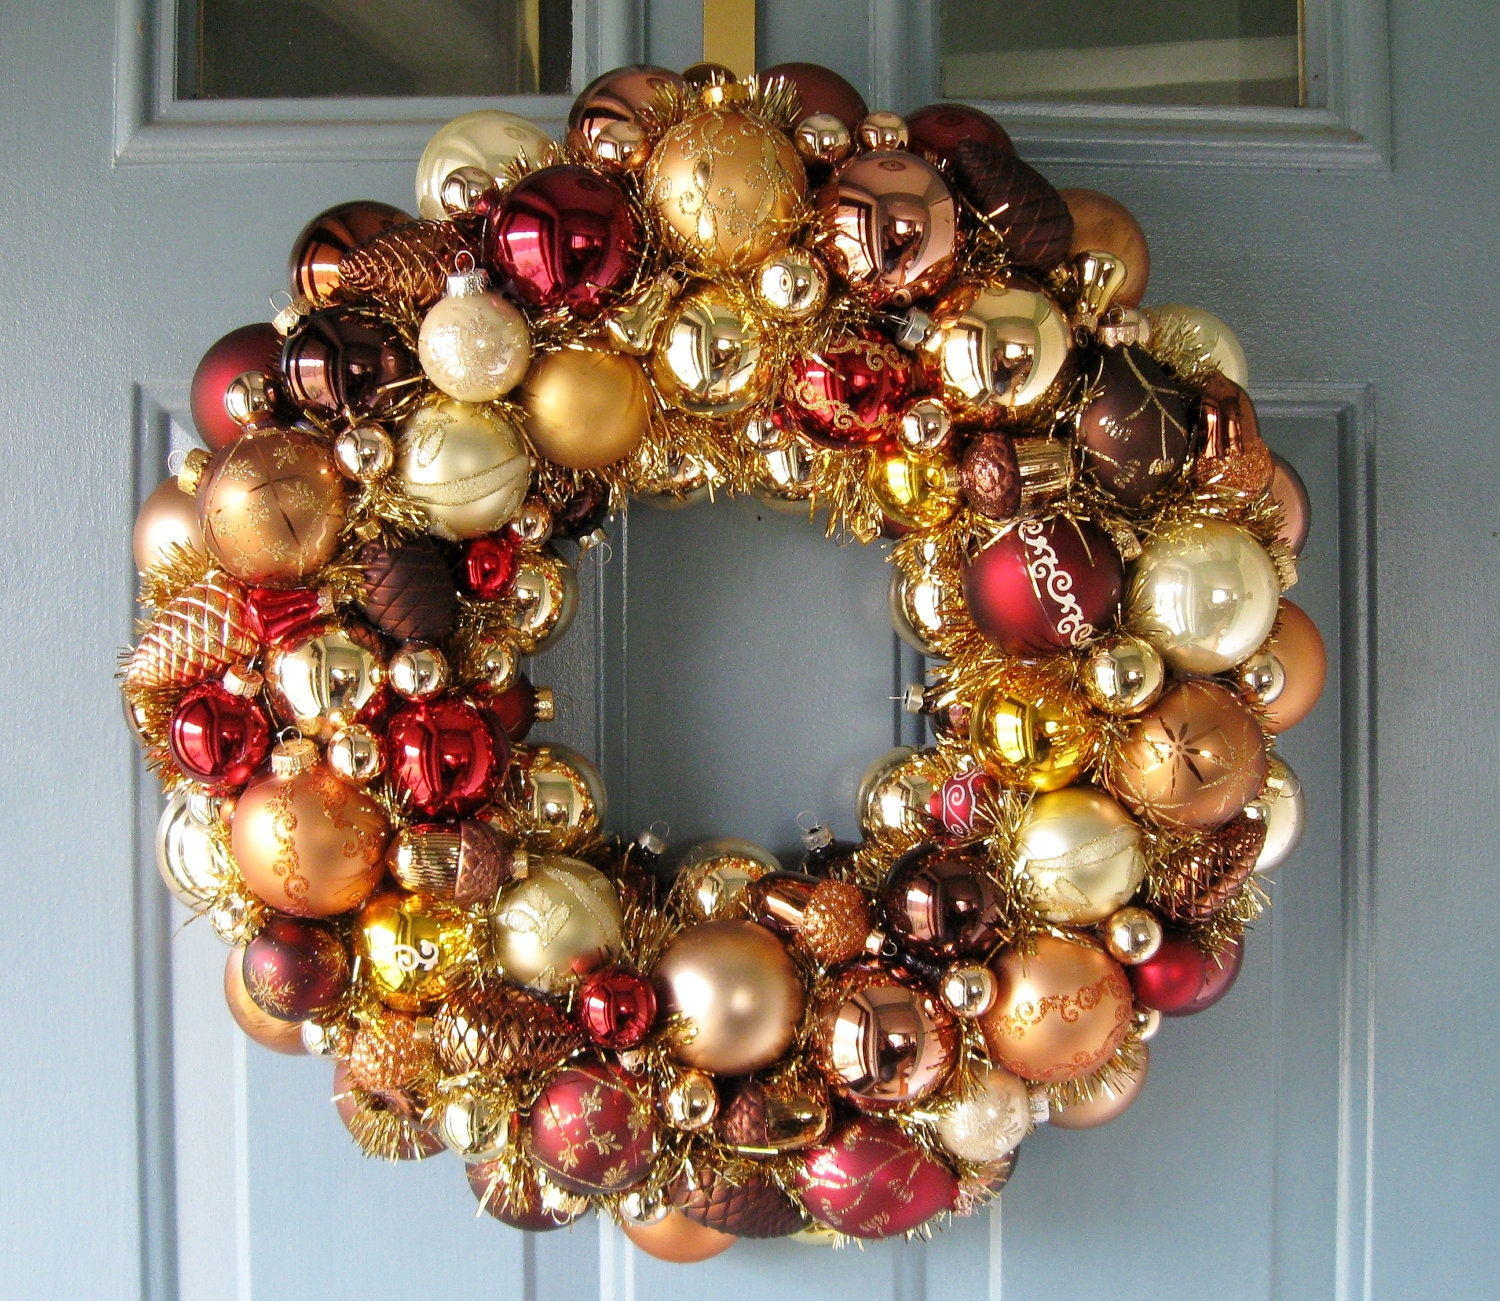 Christmas wreath copper bronze gold ornaments by judyblank